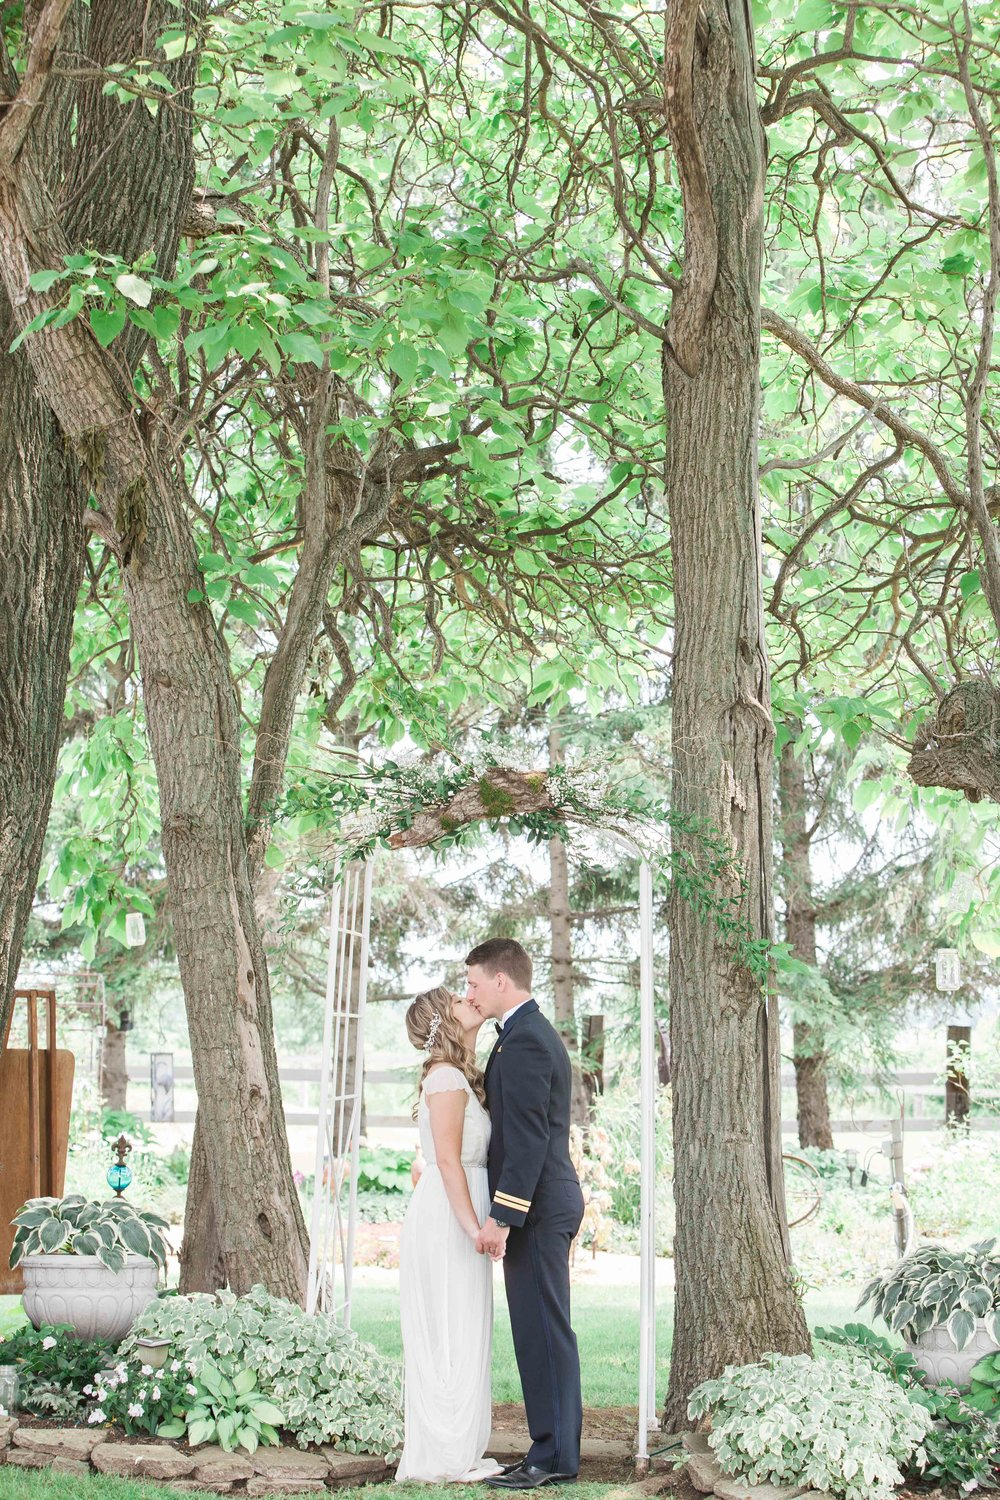 Bride and groom photos at intimate summer wedding